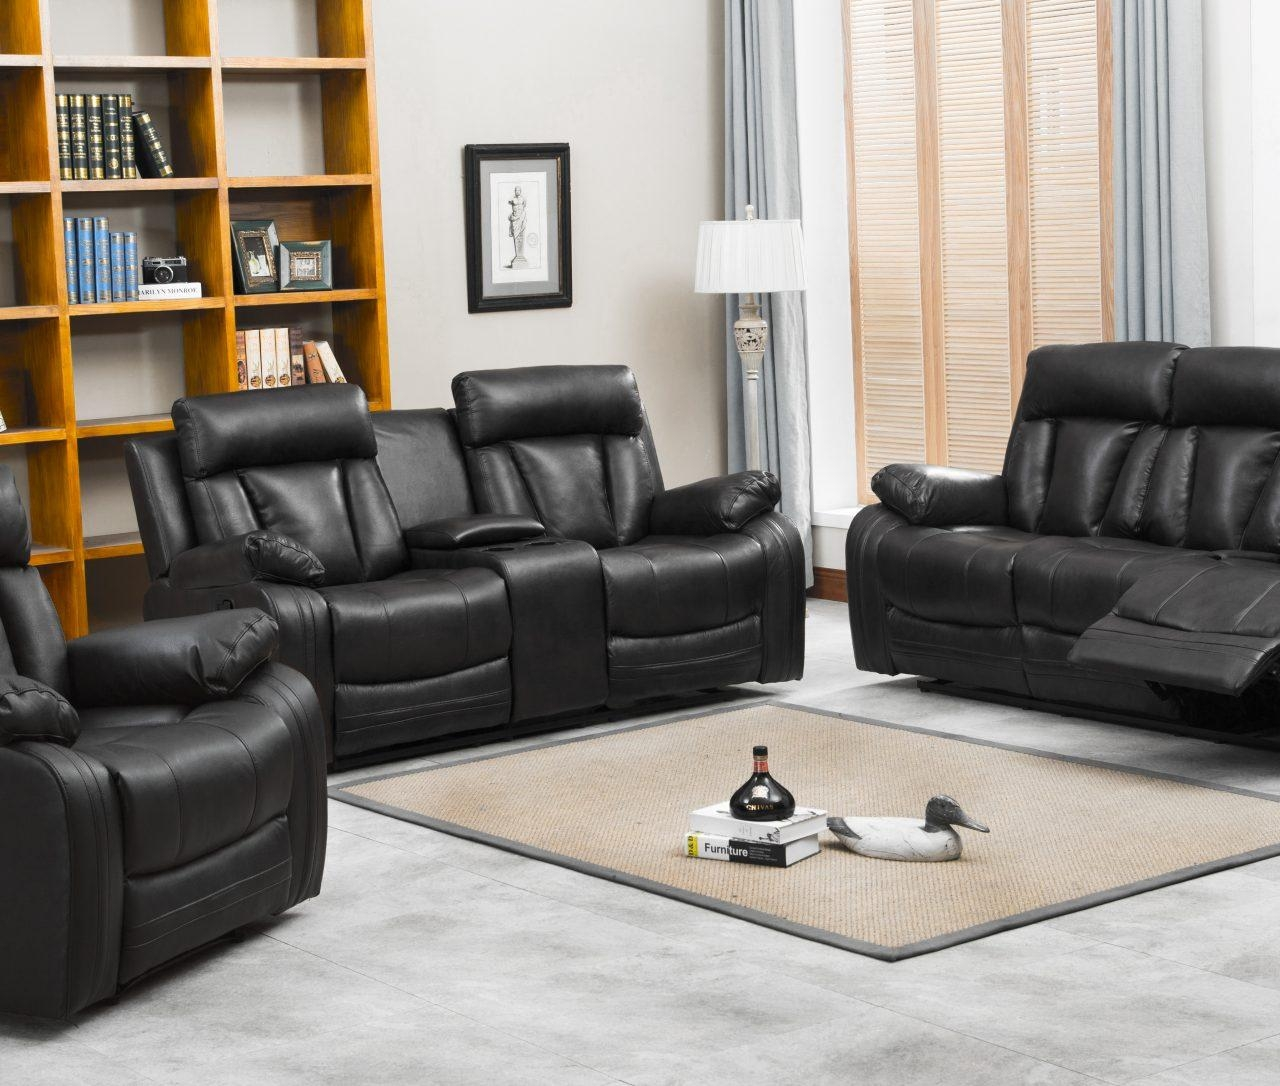 Naples Reclining Sofa & Loveseat W/cupholders And Console Set in Sofa Loveseat and Chair Set